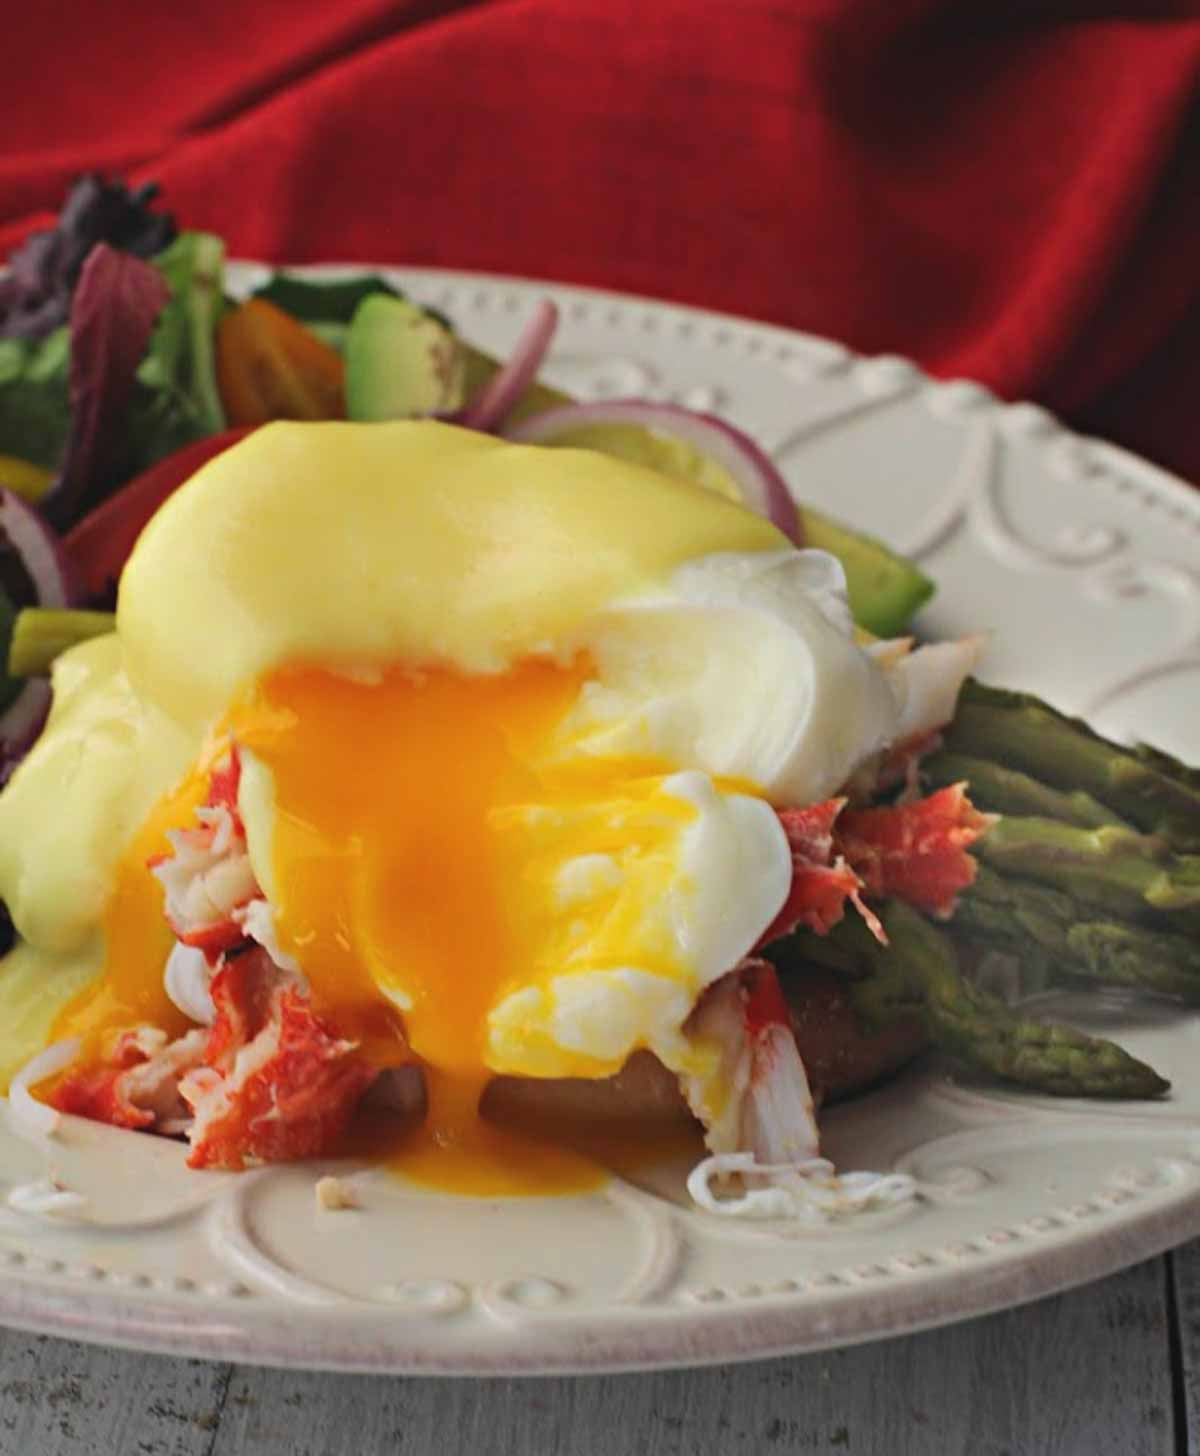 Eggs benedict with crab meat and asparagus served with a side salad